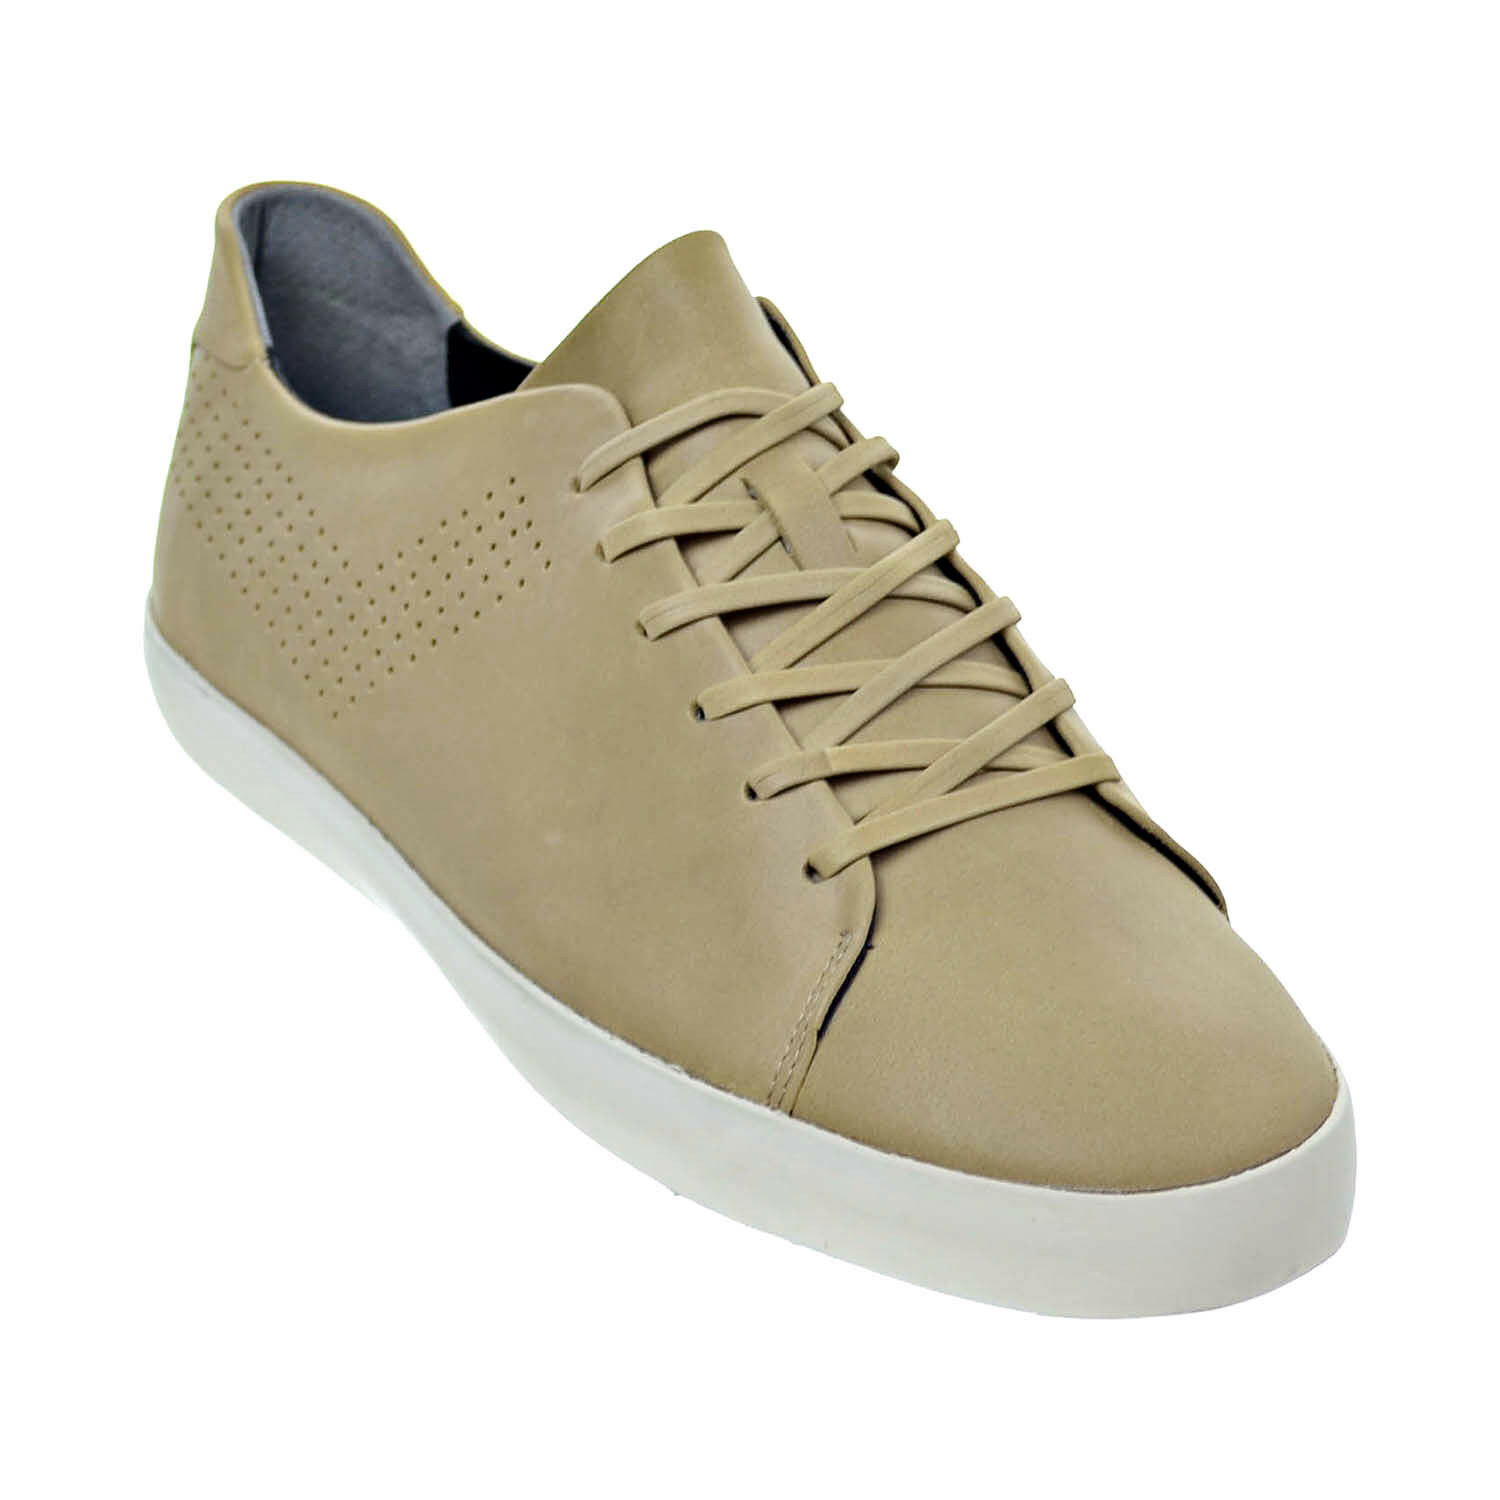 6981fbd73e4e6 PONY Greenwich Grain Men's Sand/Bone 0710013-70j Full Shoes ...